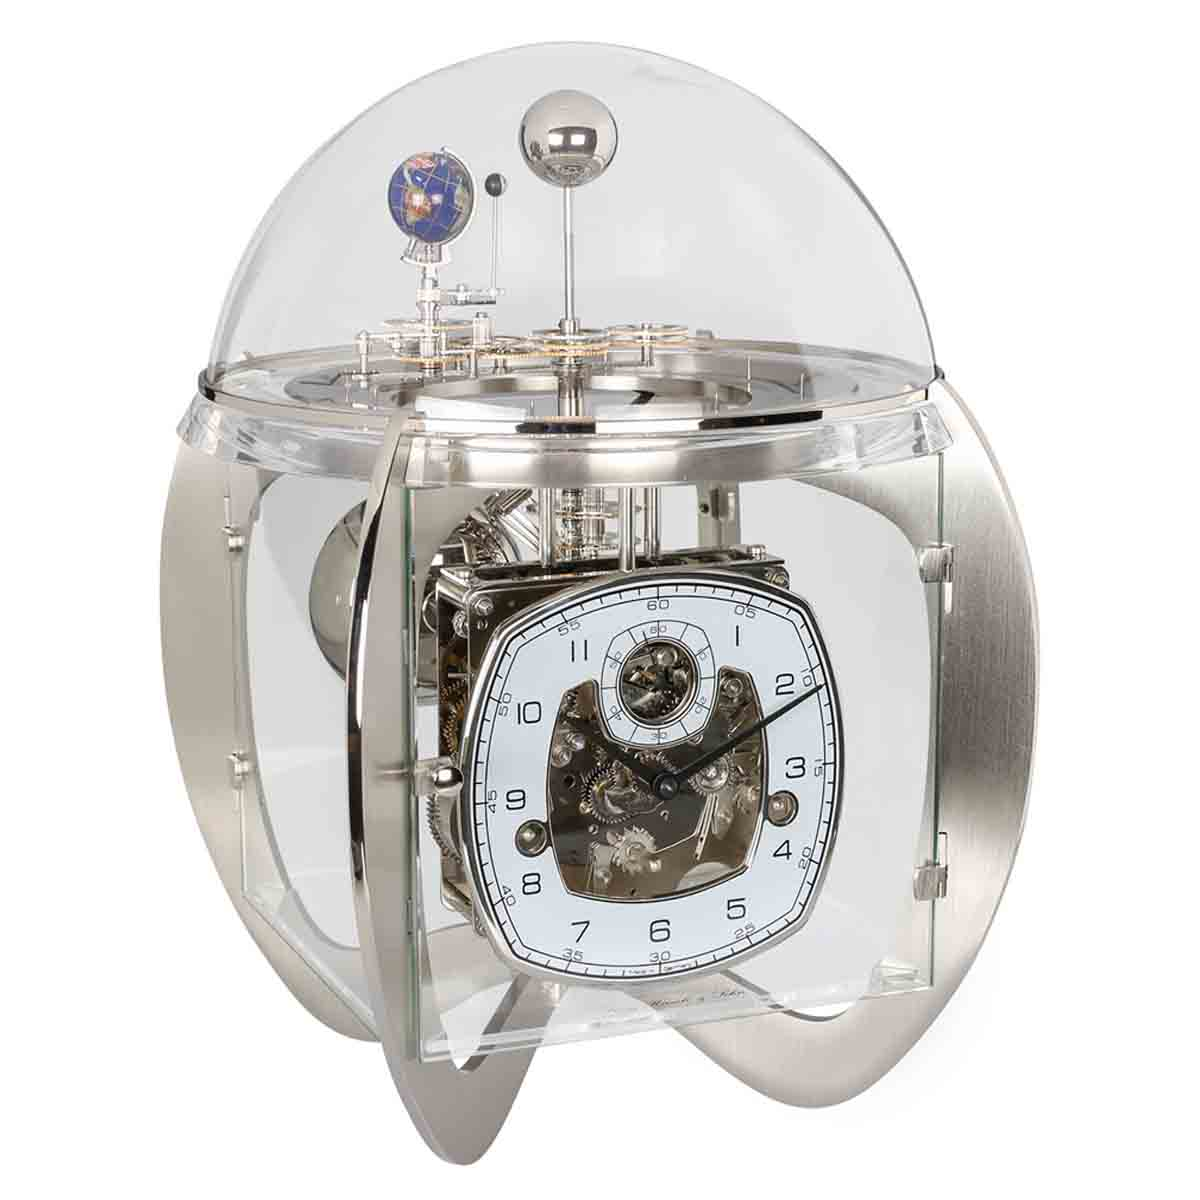 TELURIUM IV 23046-000352 Astrolubium Table Clock